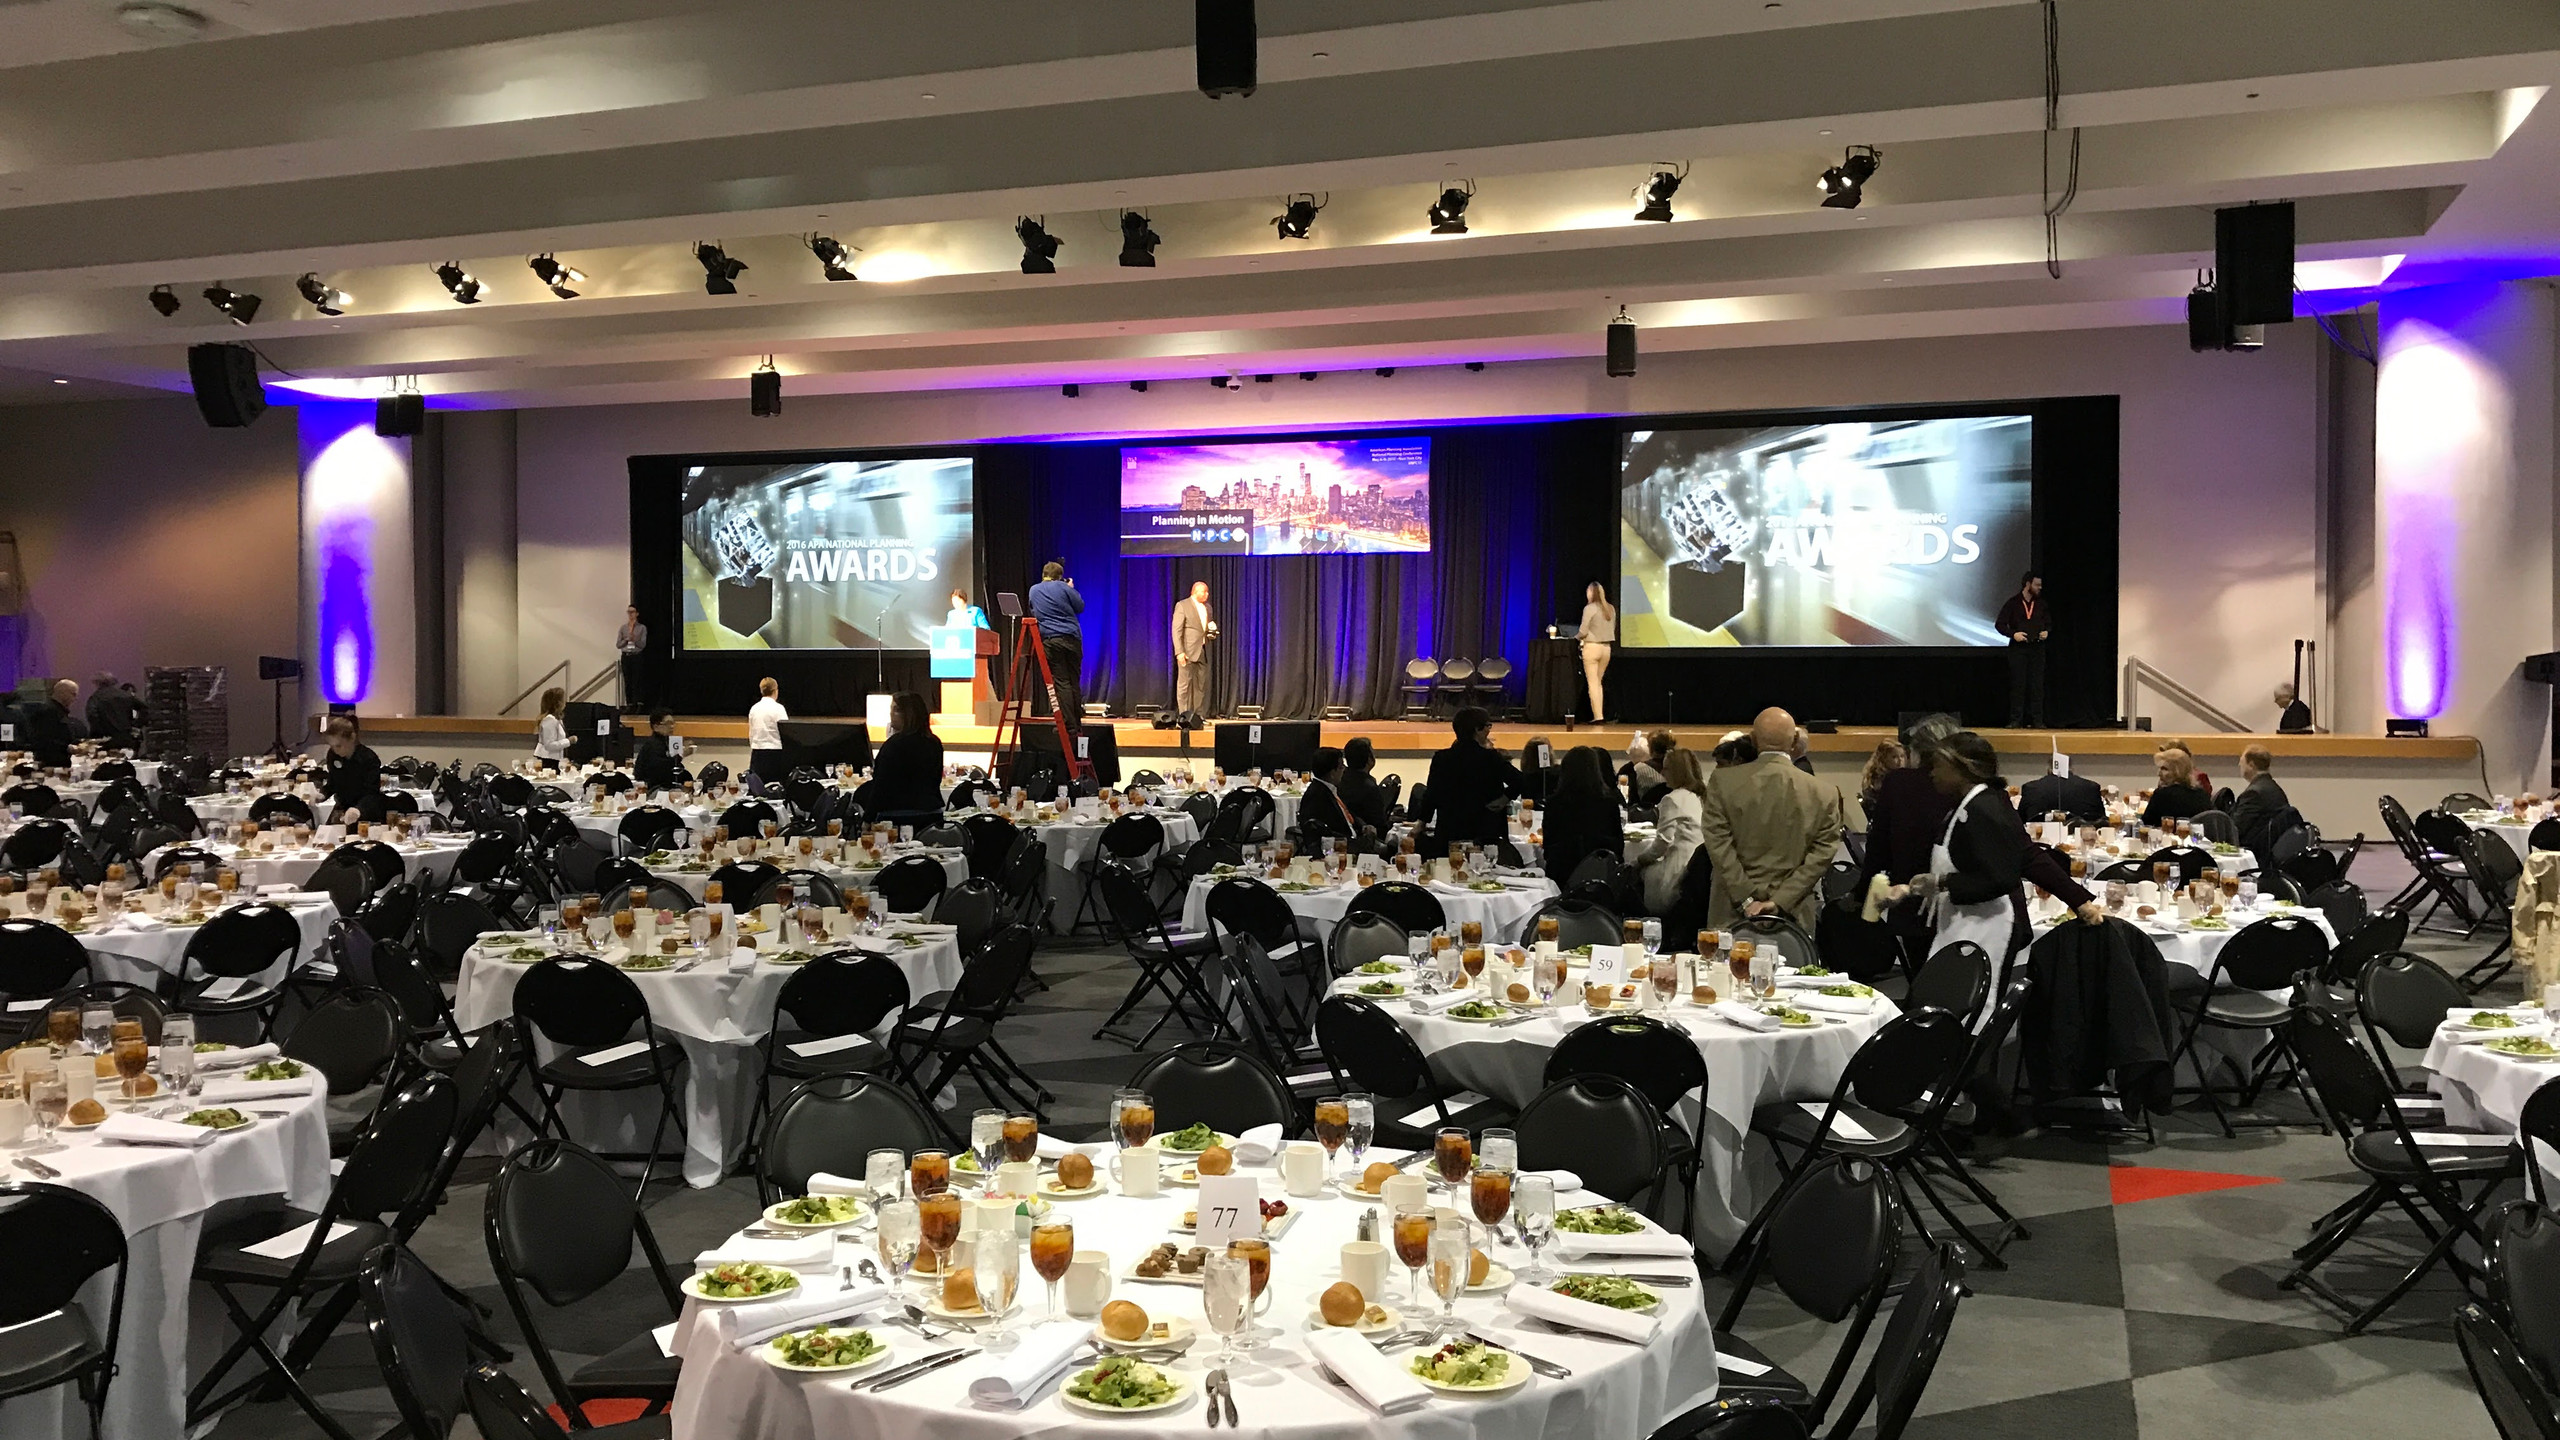 The APA Awards Luncheon Banquet Hall